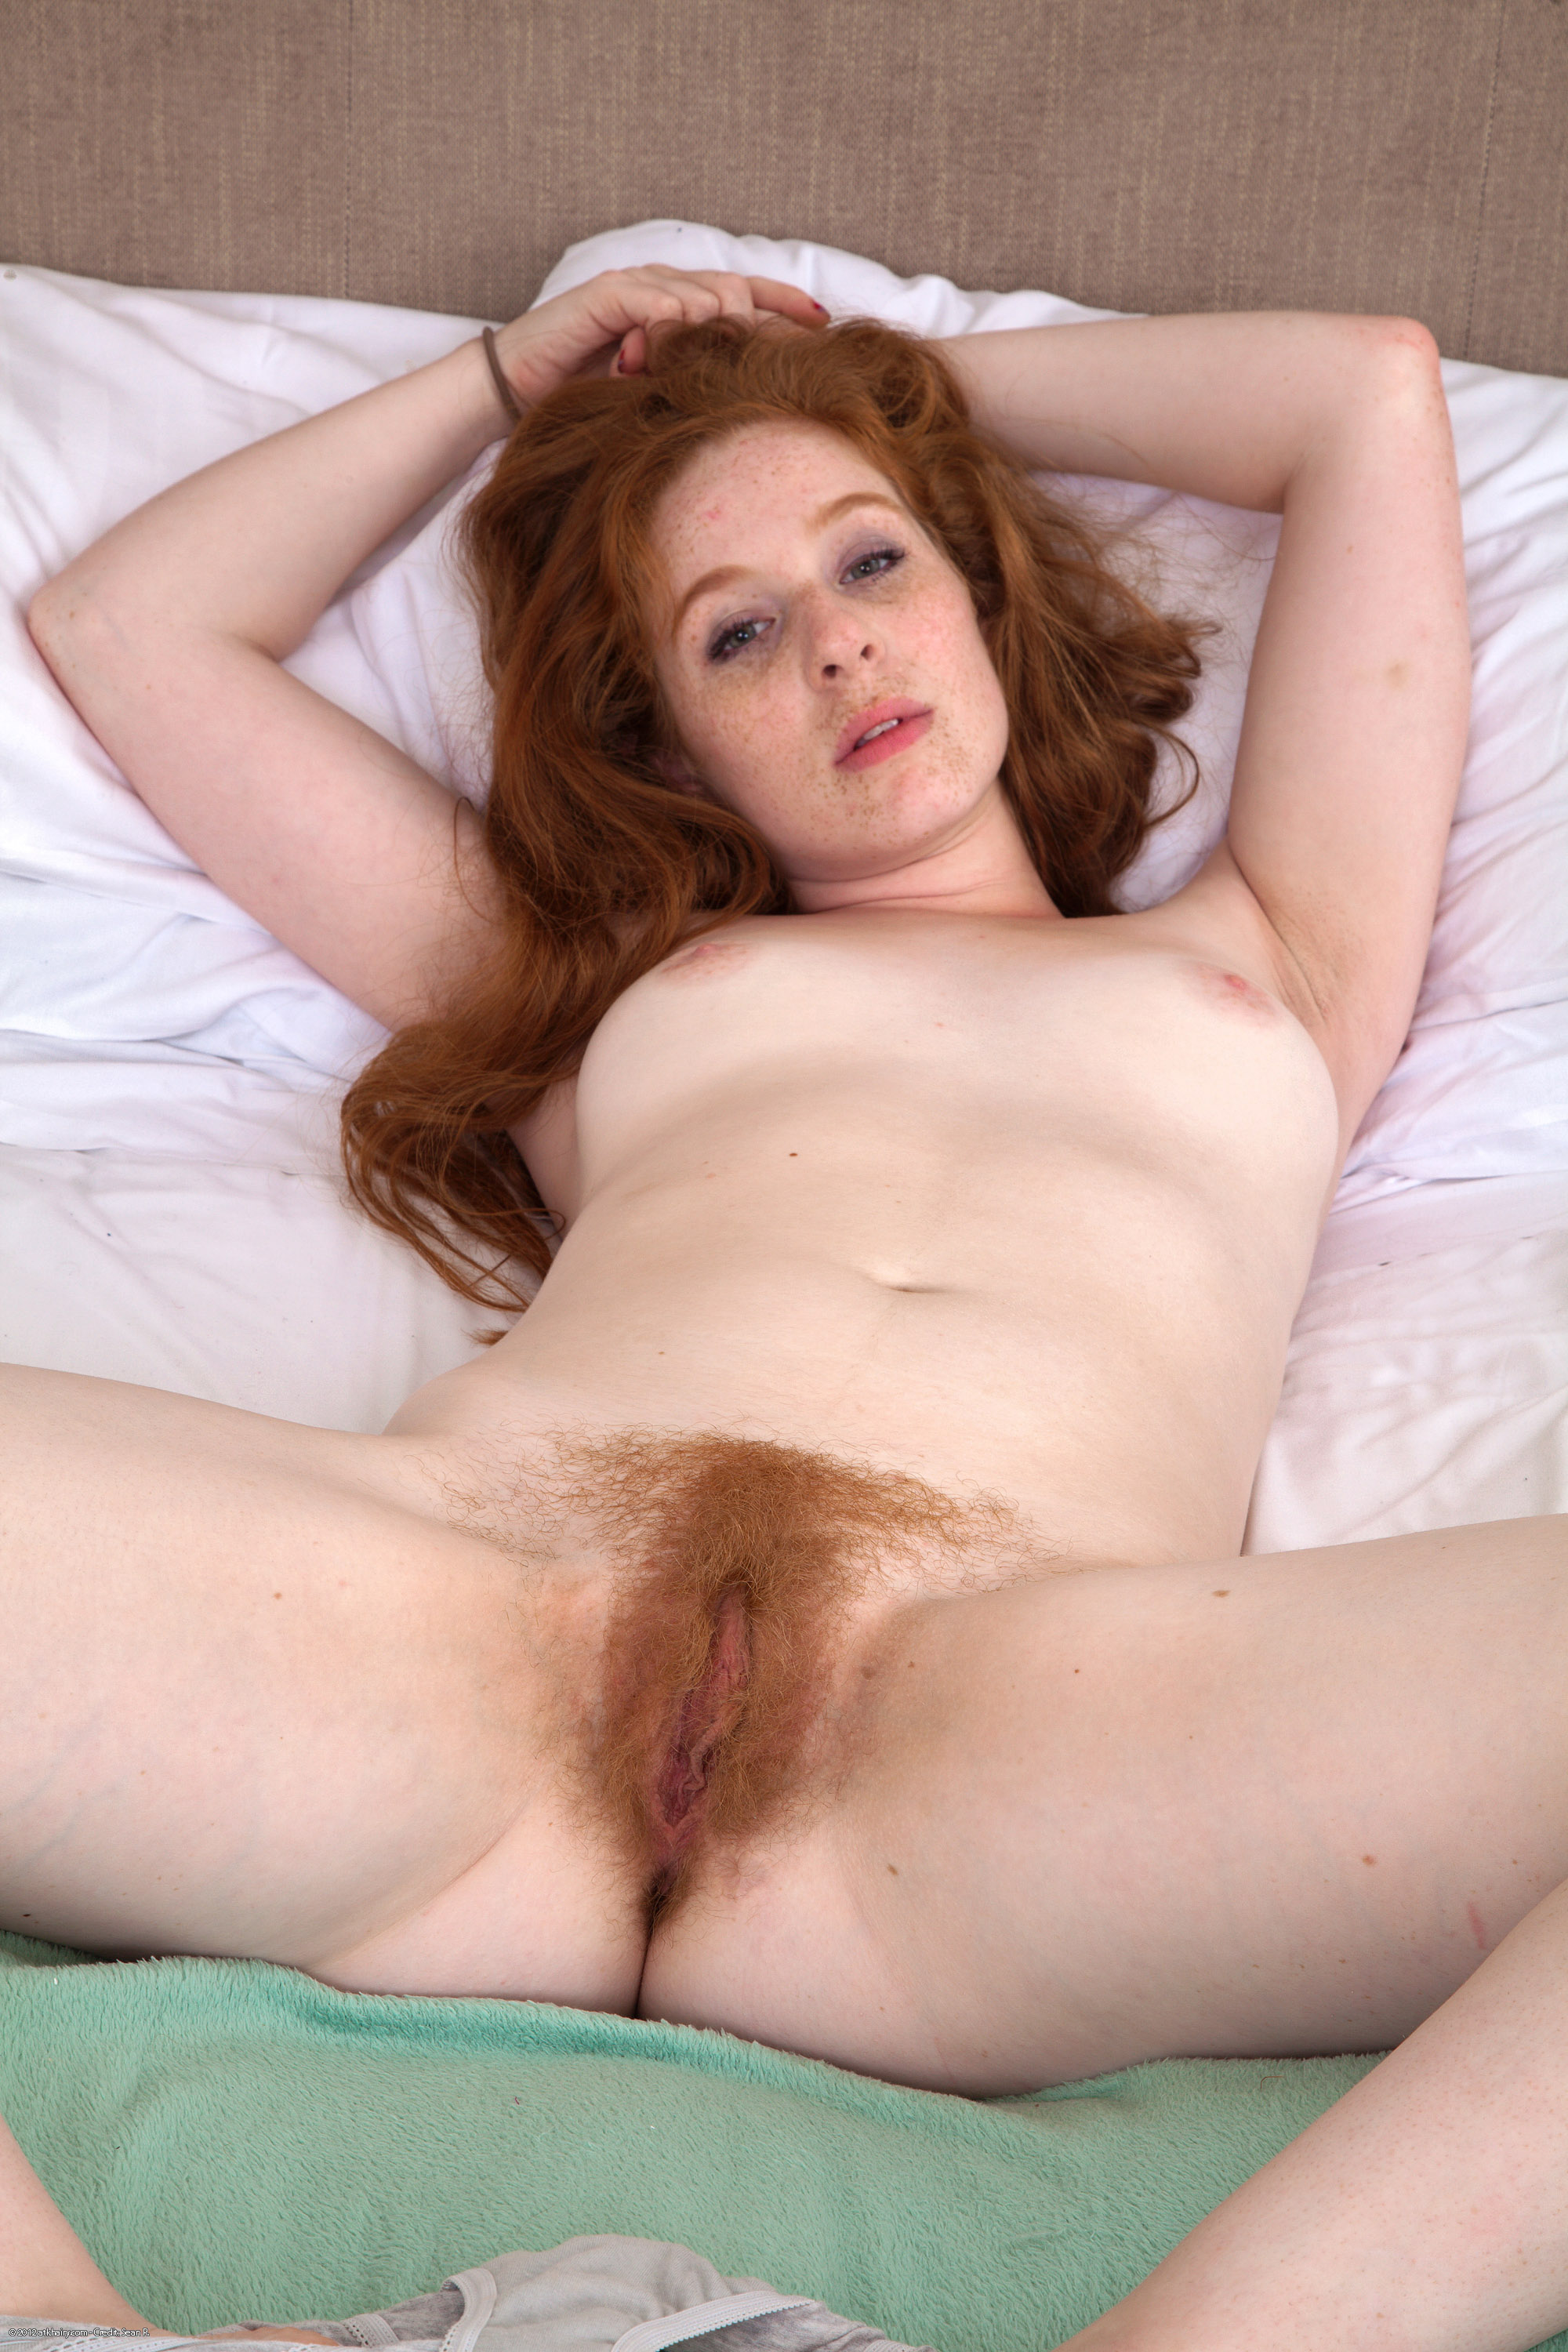 Daggy hairy pussy free movies nipples pictures gay